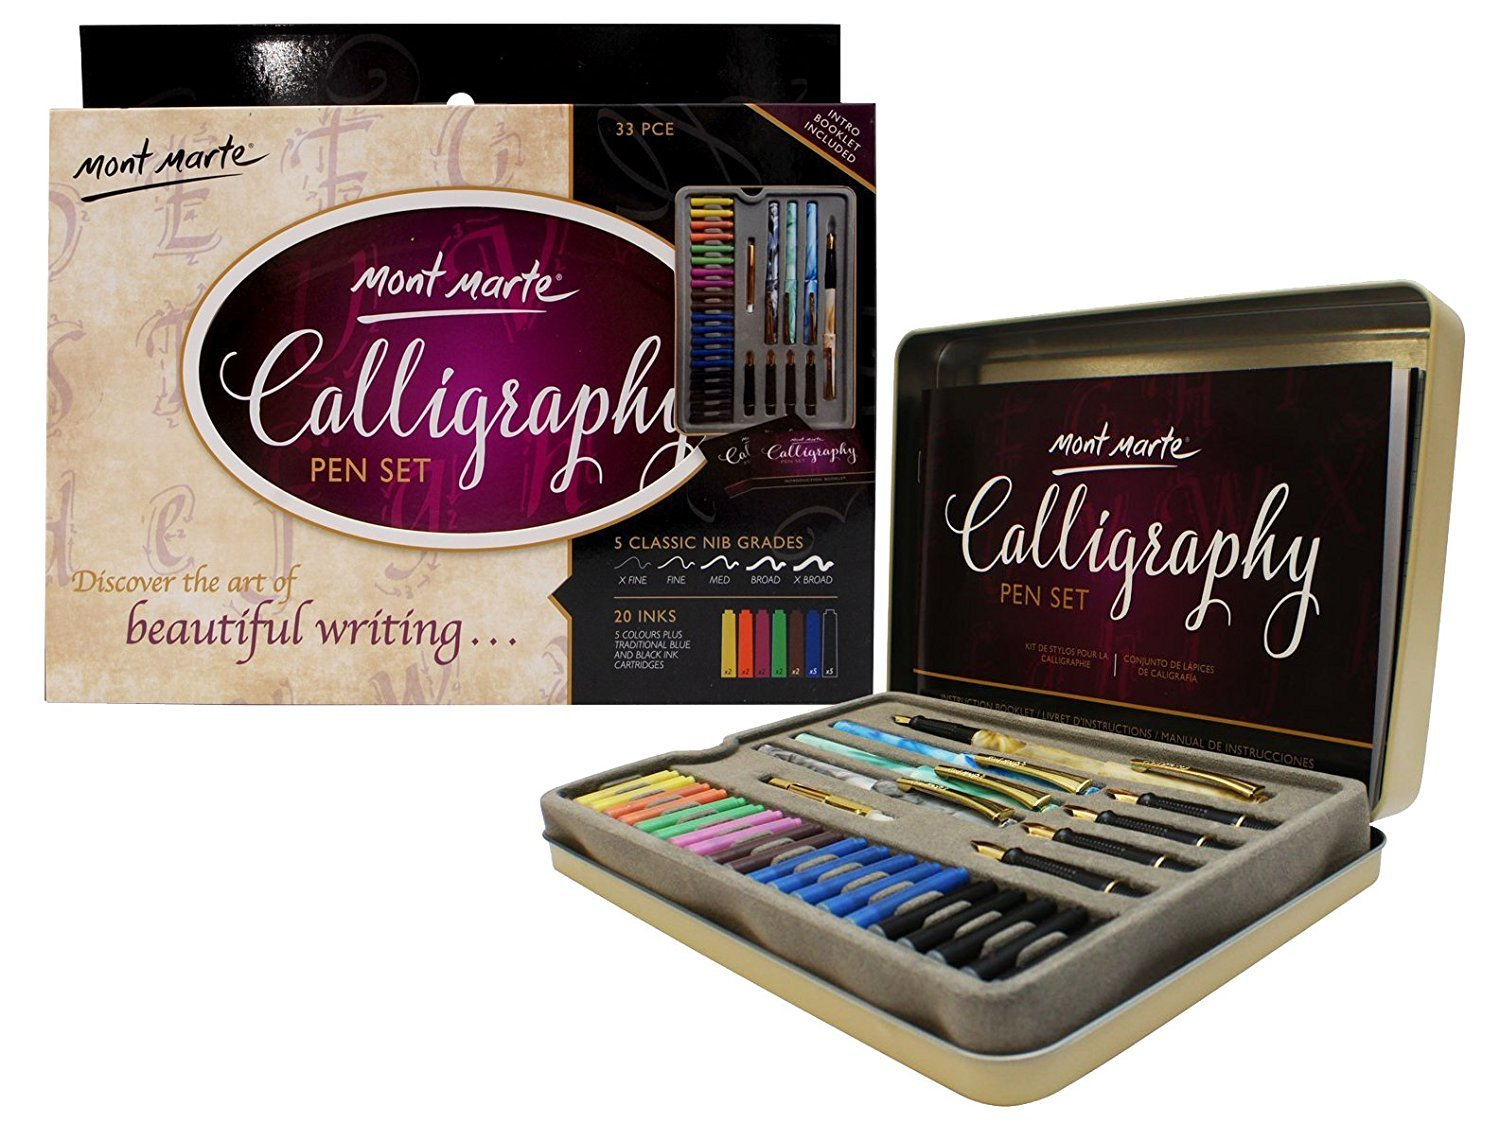 Mont Marte Calligraphy Set, 33 Piece. Includes Calligraphy Pens, Calligraphy Nibs, Ink Cartridges, Introduction Booklet and Exercise Booklet. 4336949646